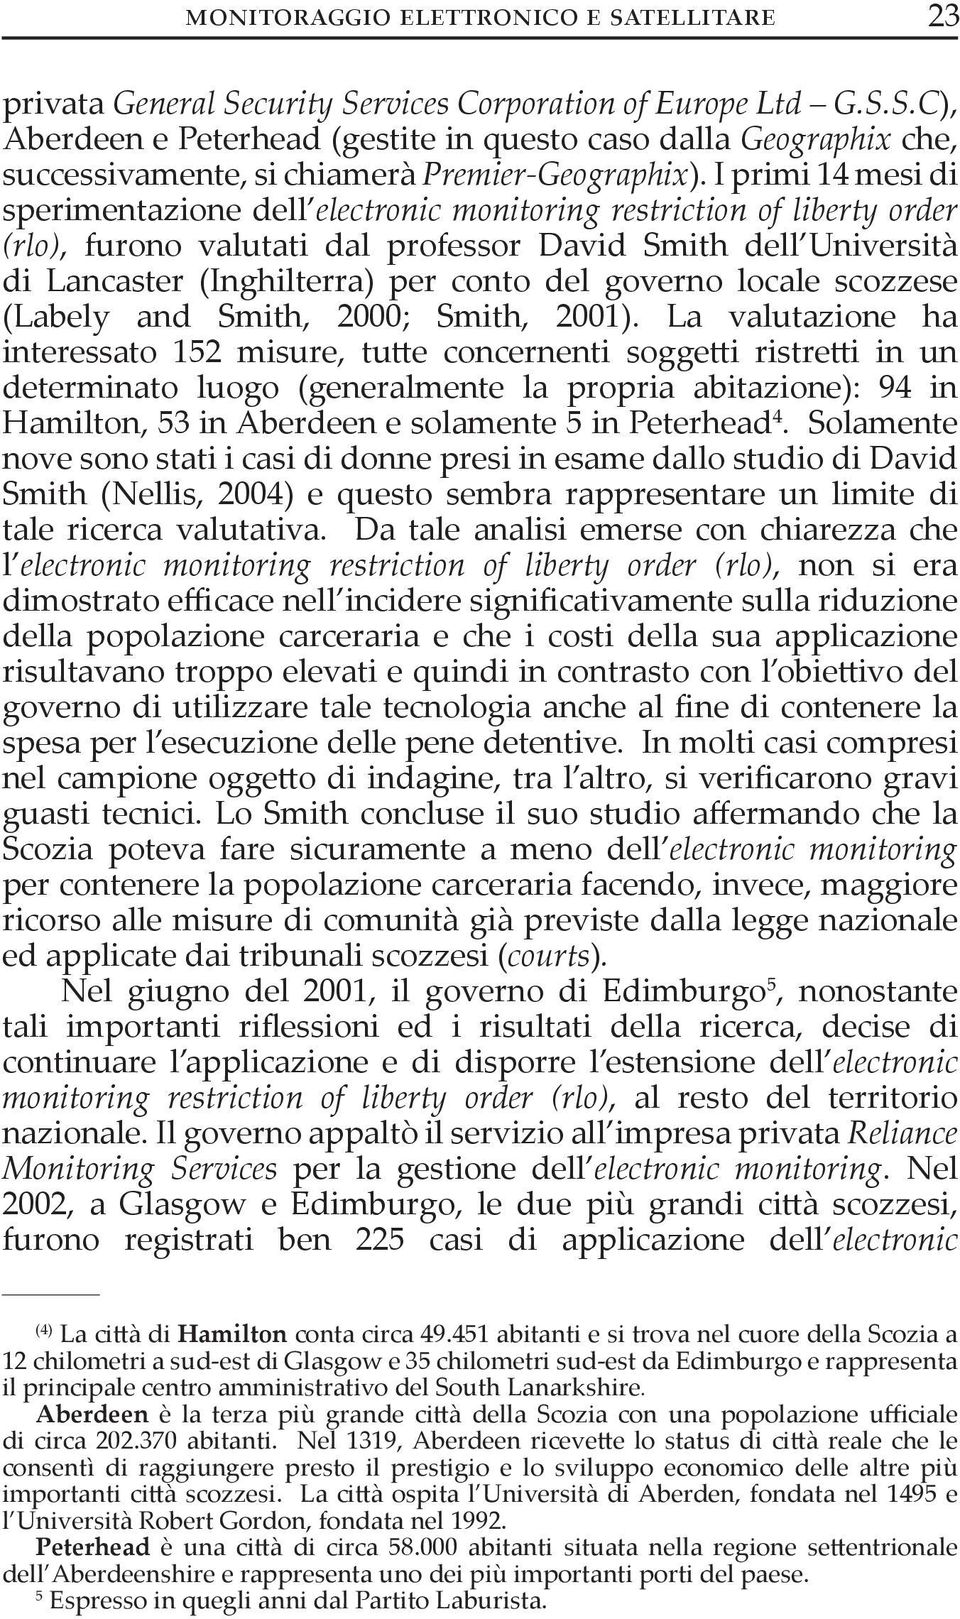 governo locale scozzese (Labely and Smith, 2000; Smith, 2001).